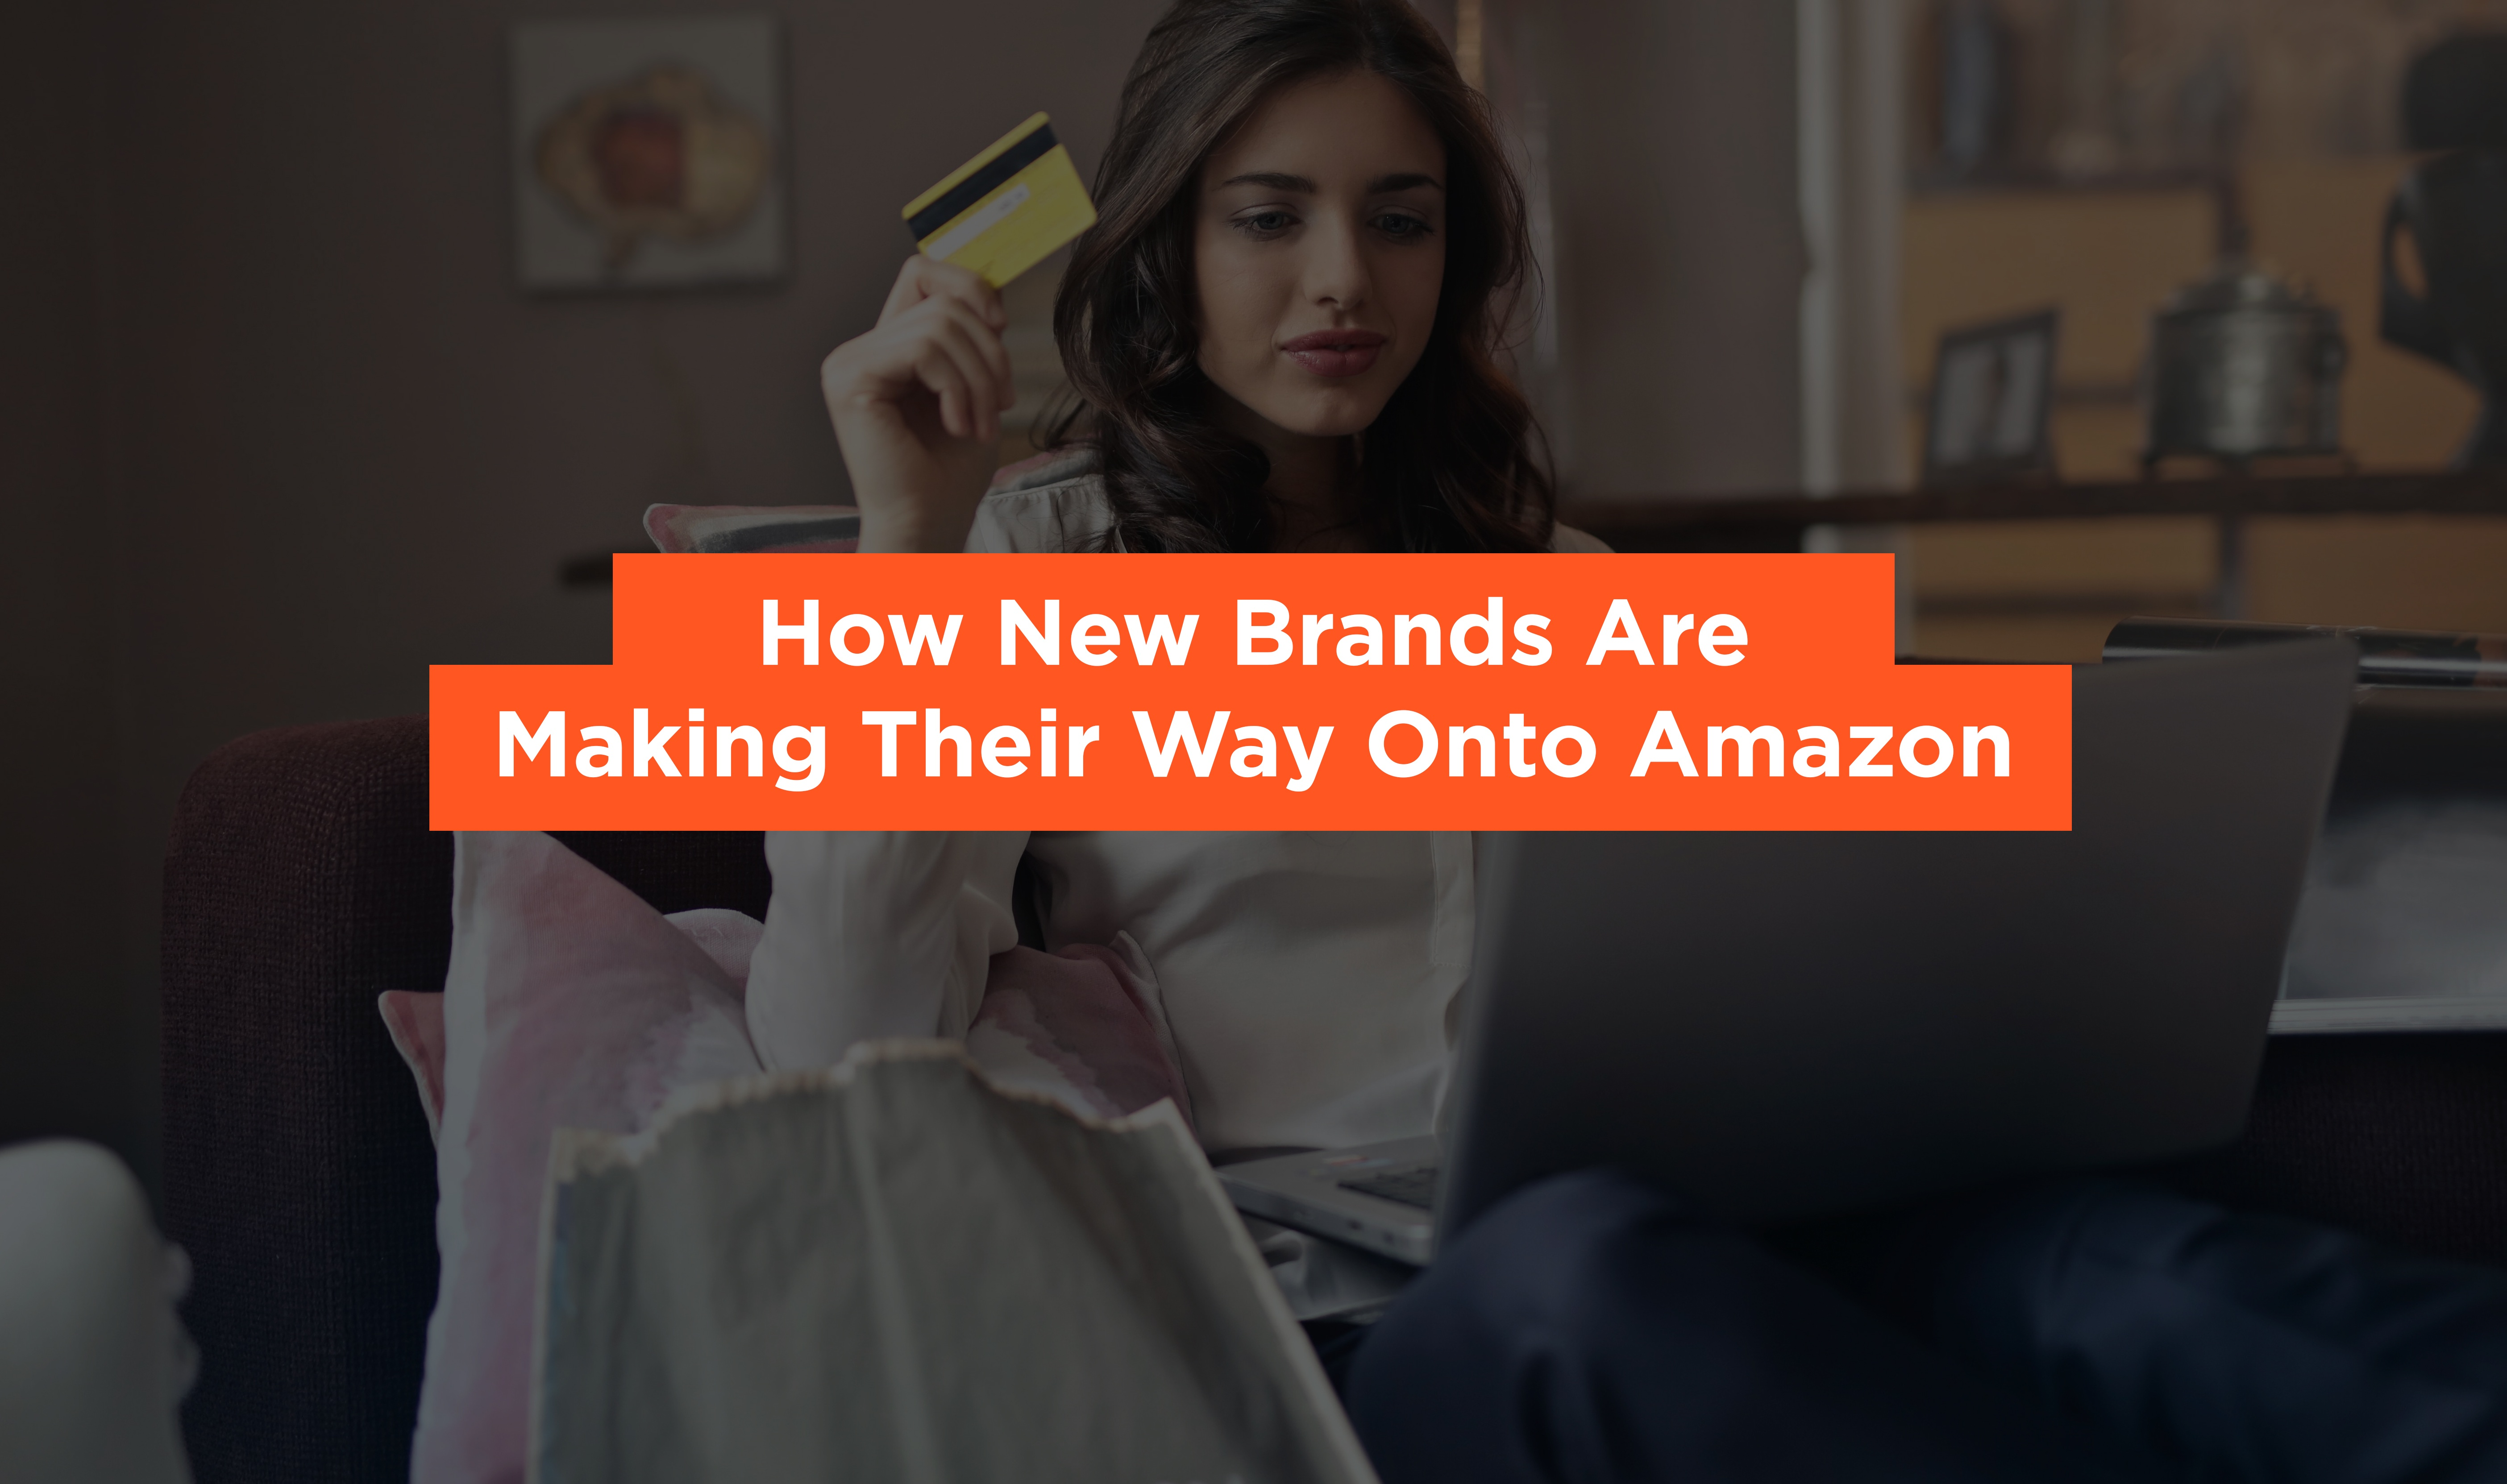 How New Brands Are Making Their Way Onto Amazon